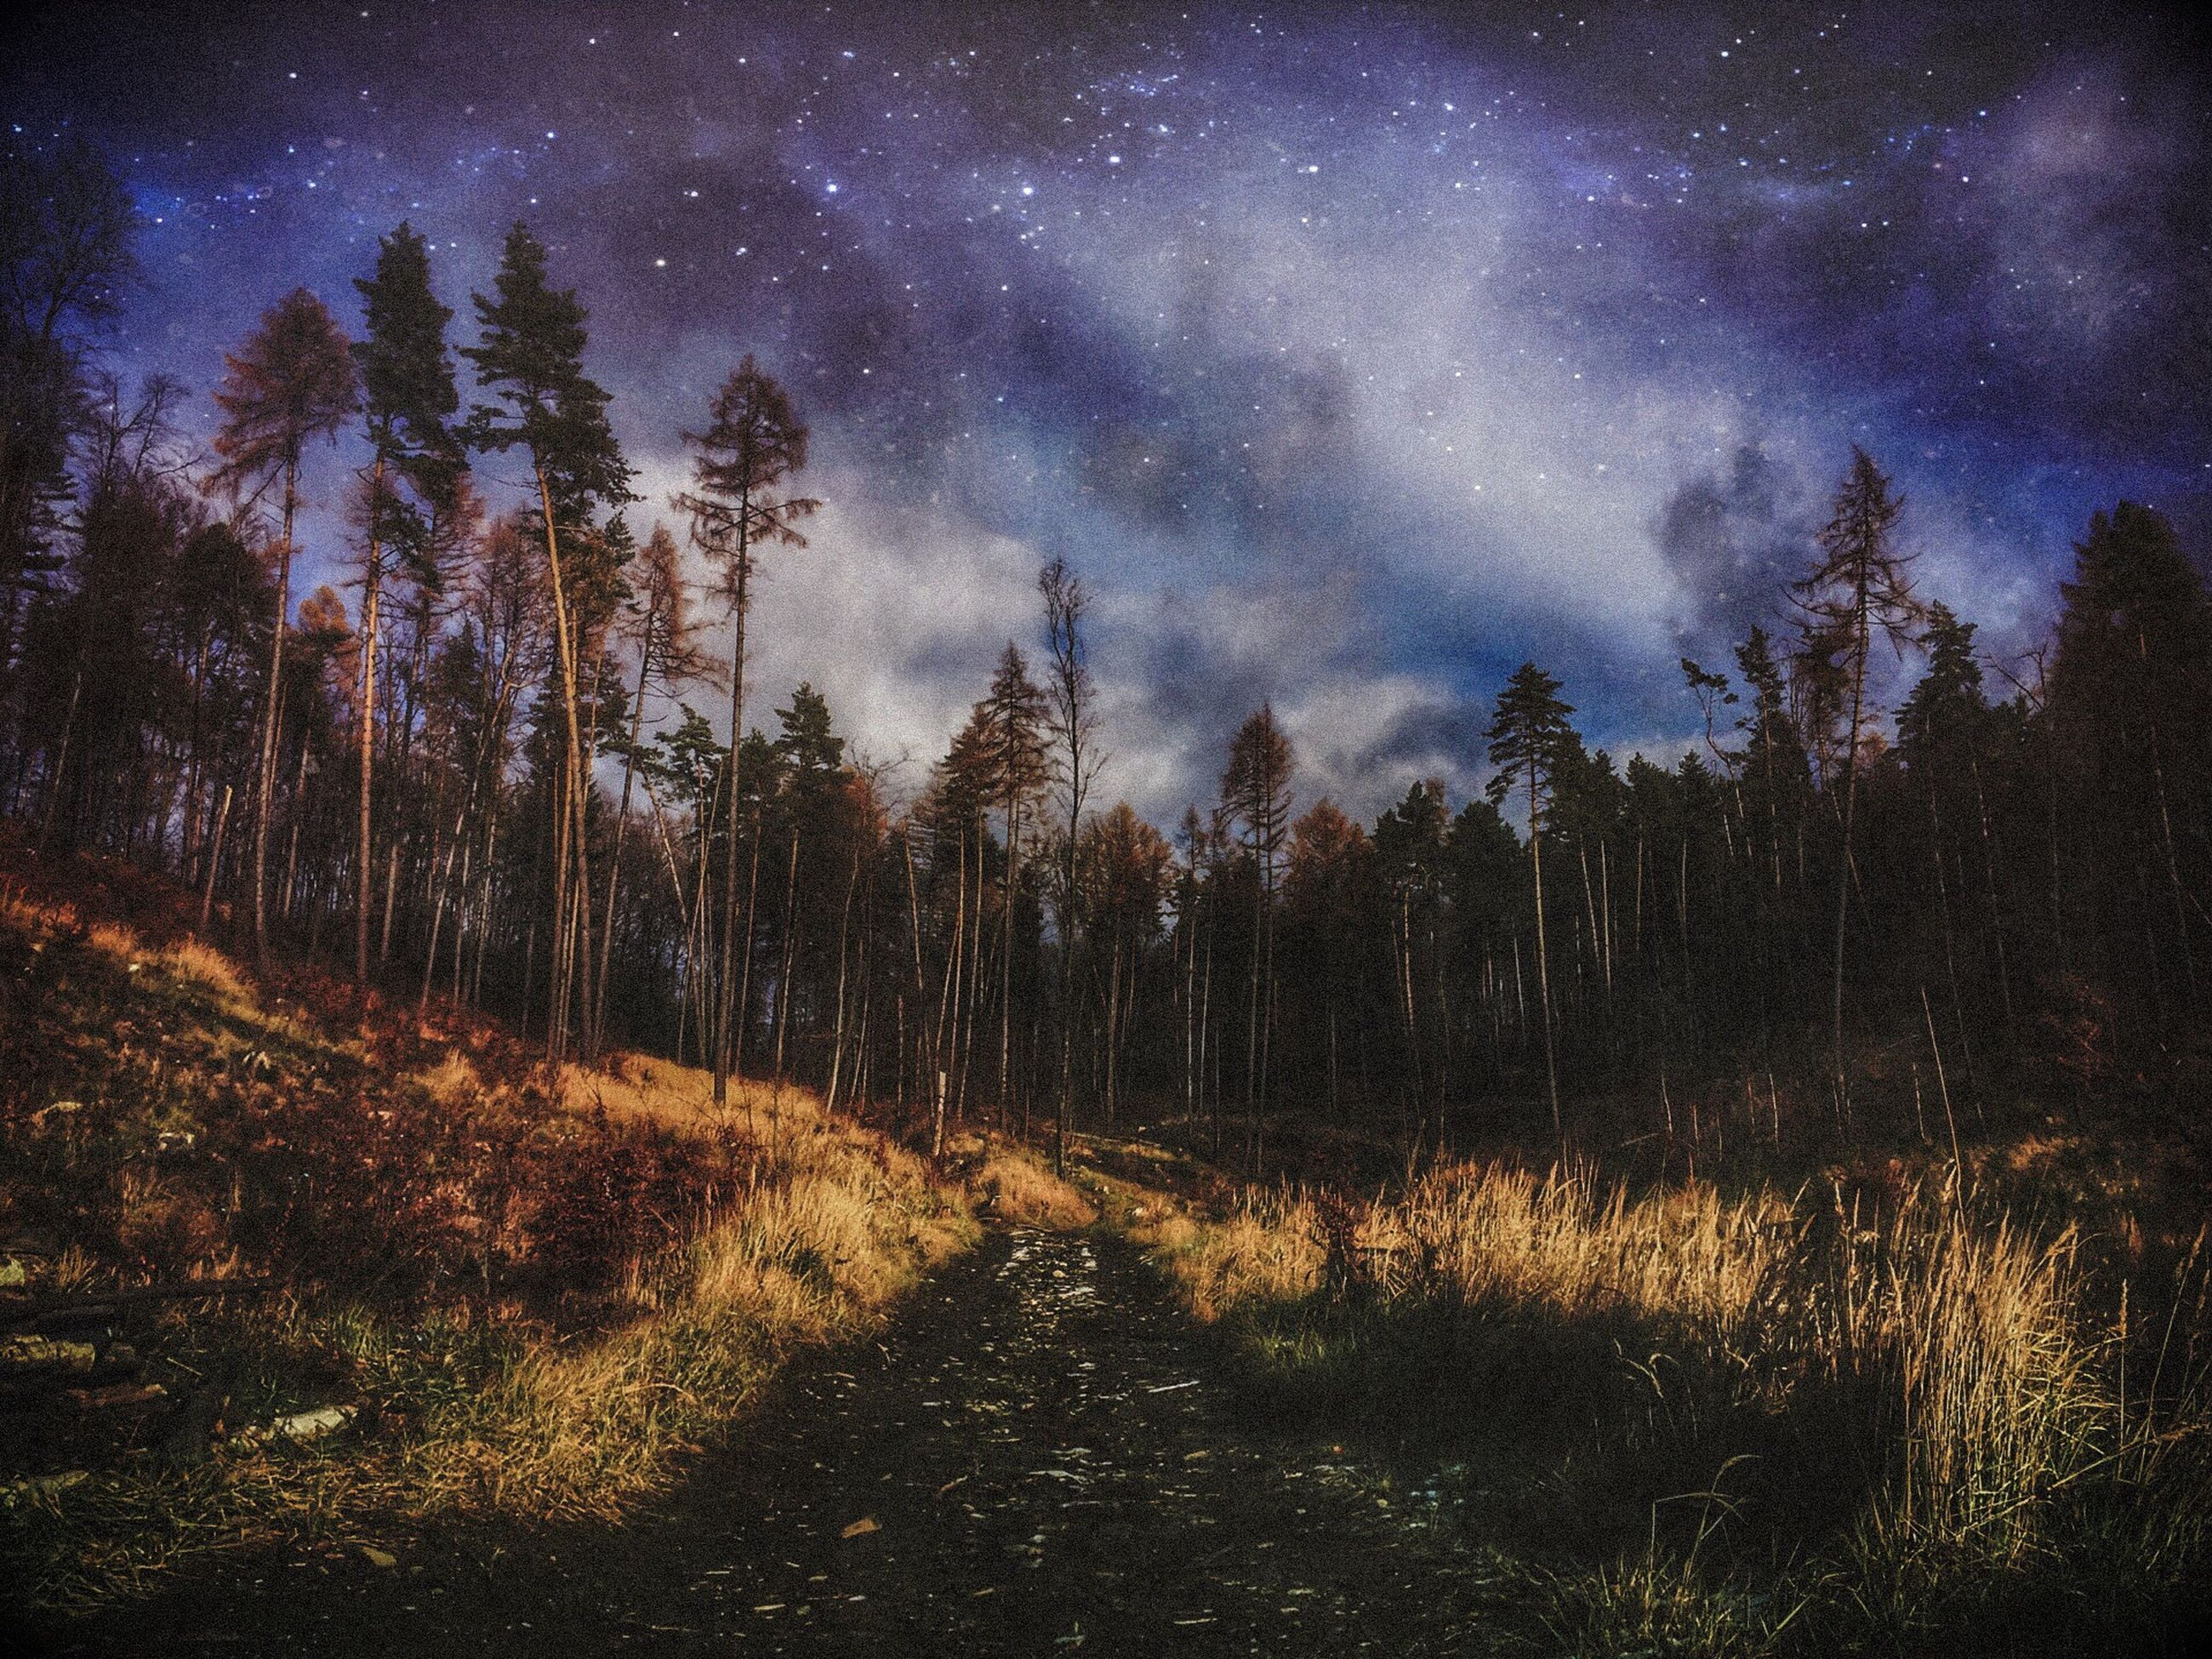 star - space, sky, astronomy, space, nature, tree, night, milky way, beauty in nature, constellation, galaxy, tranquility, scenics, no people, landscape, tranquil scene, star field, star trail, outdoors, aurora polaris